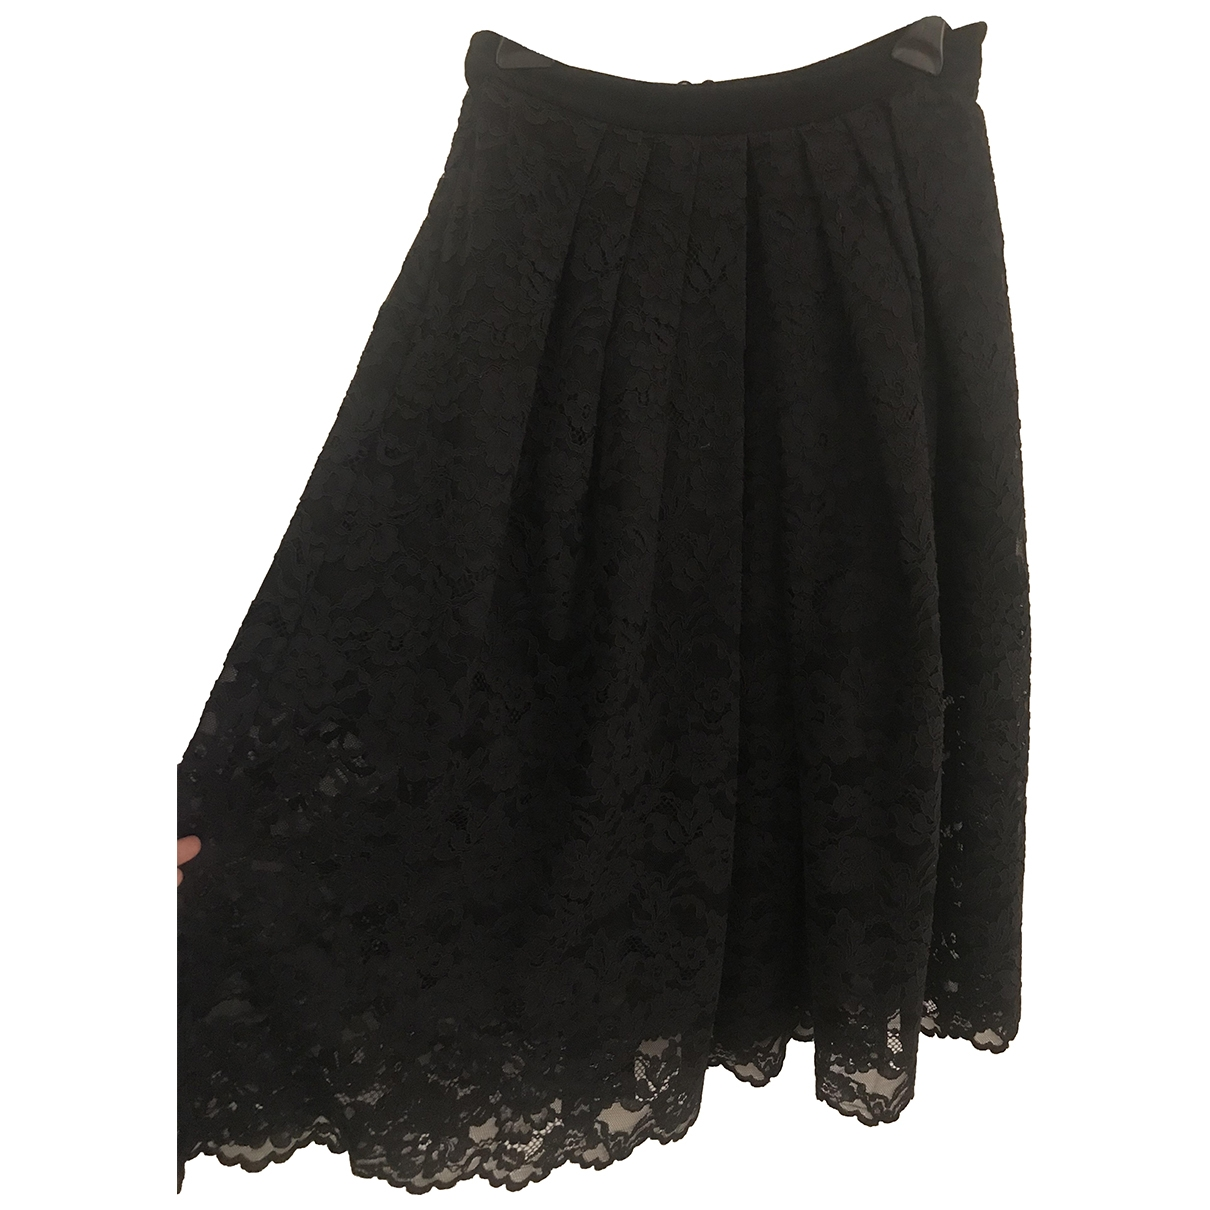 Tibi \N Black Cotton skirt for Women 8 US